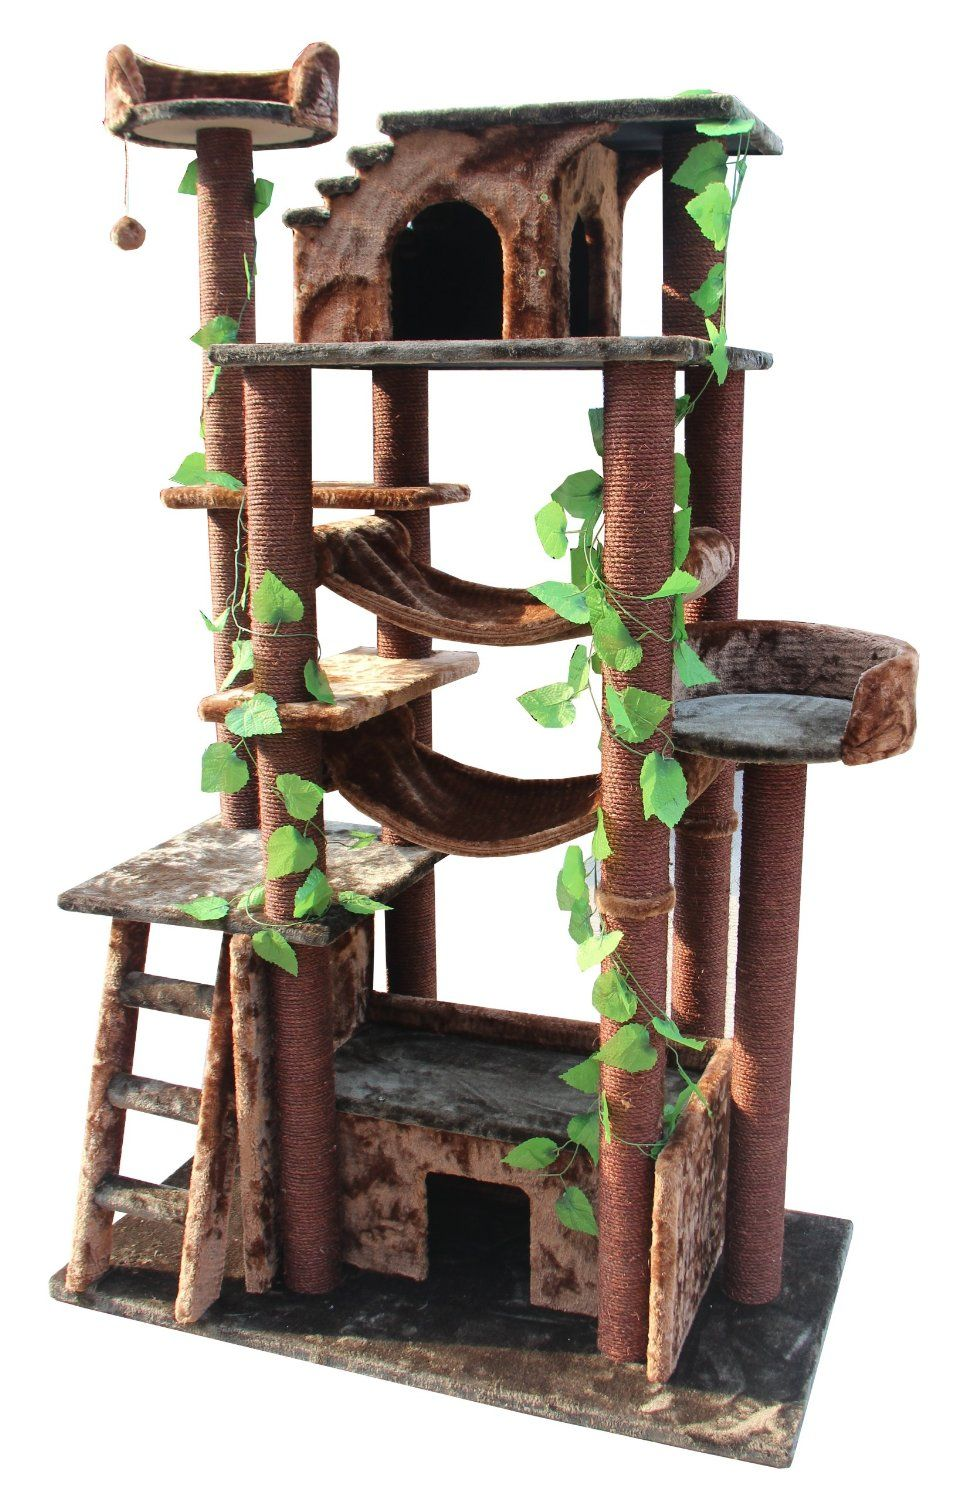 Decorations imaginative treehouse style cat tree houses design ideas unique cat furniture for stylish modern home decoration